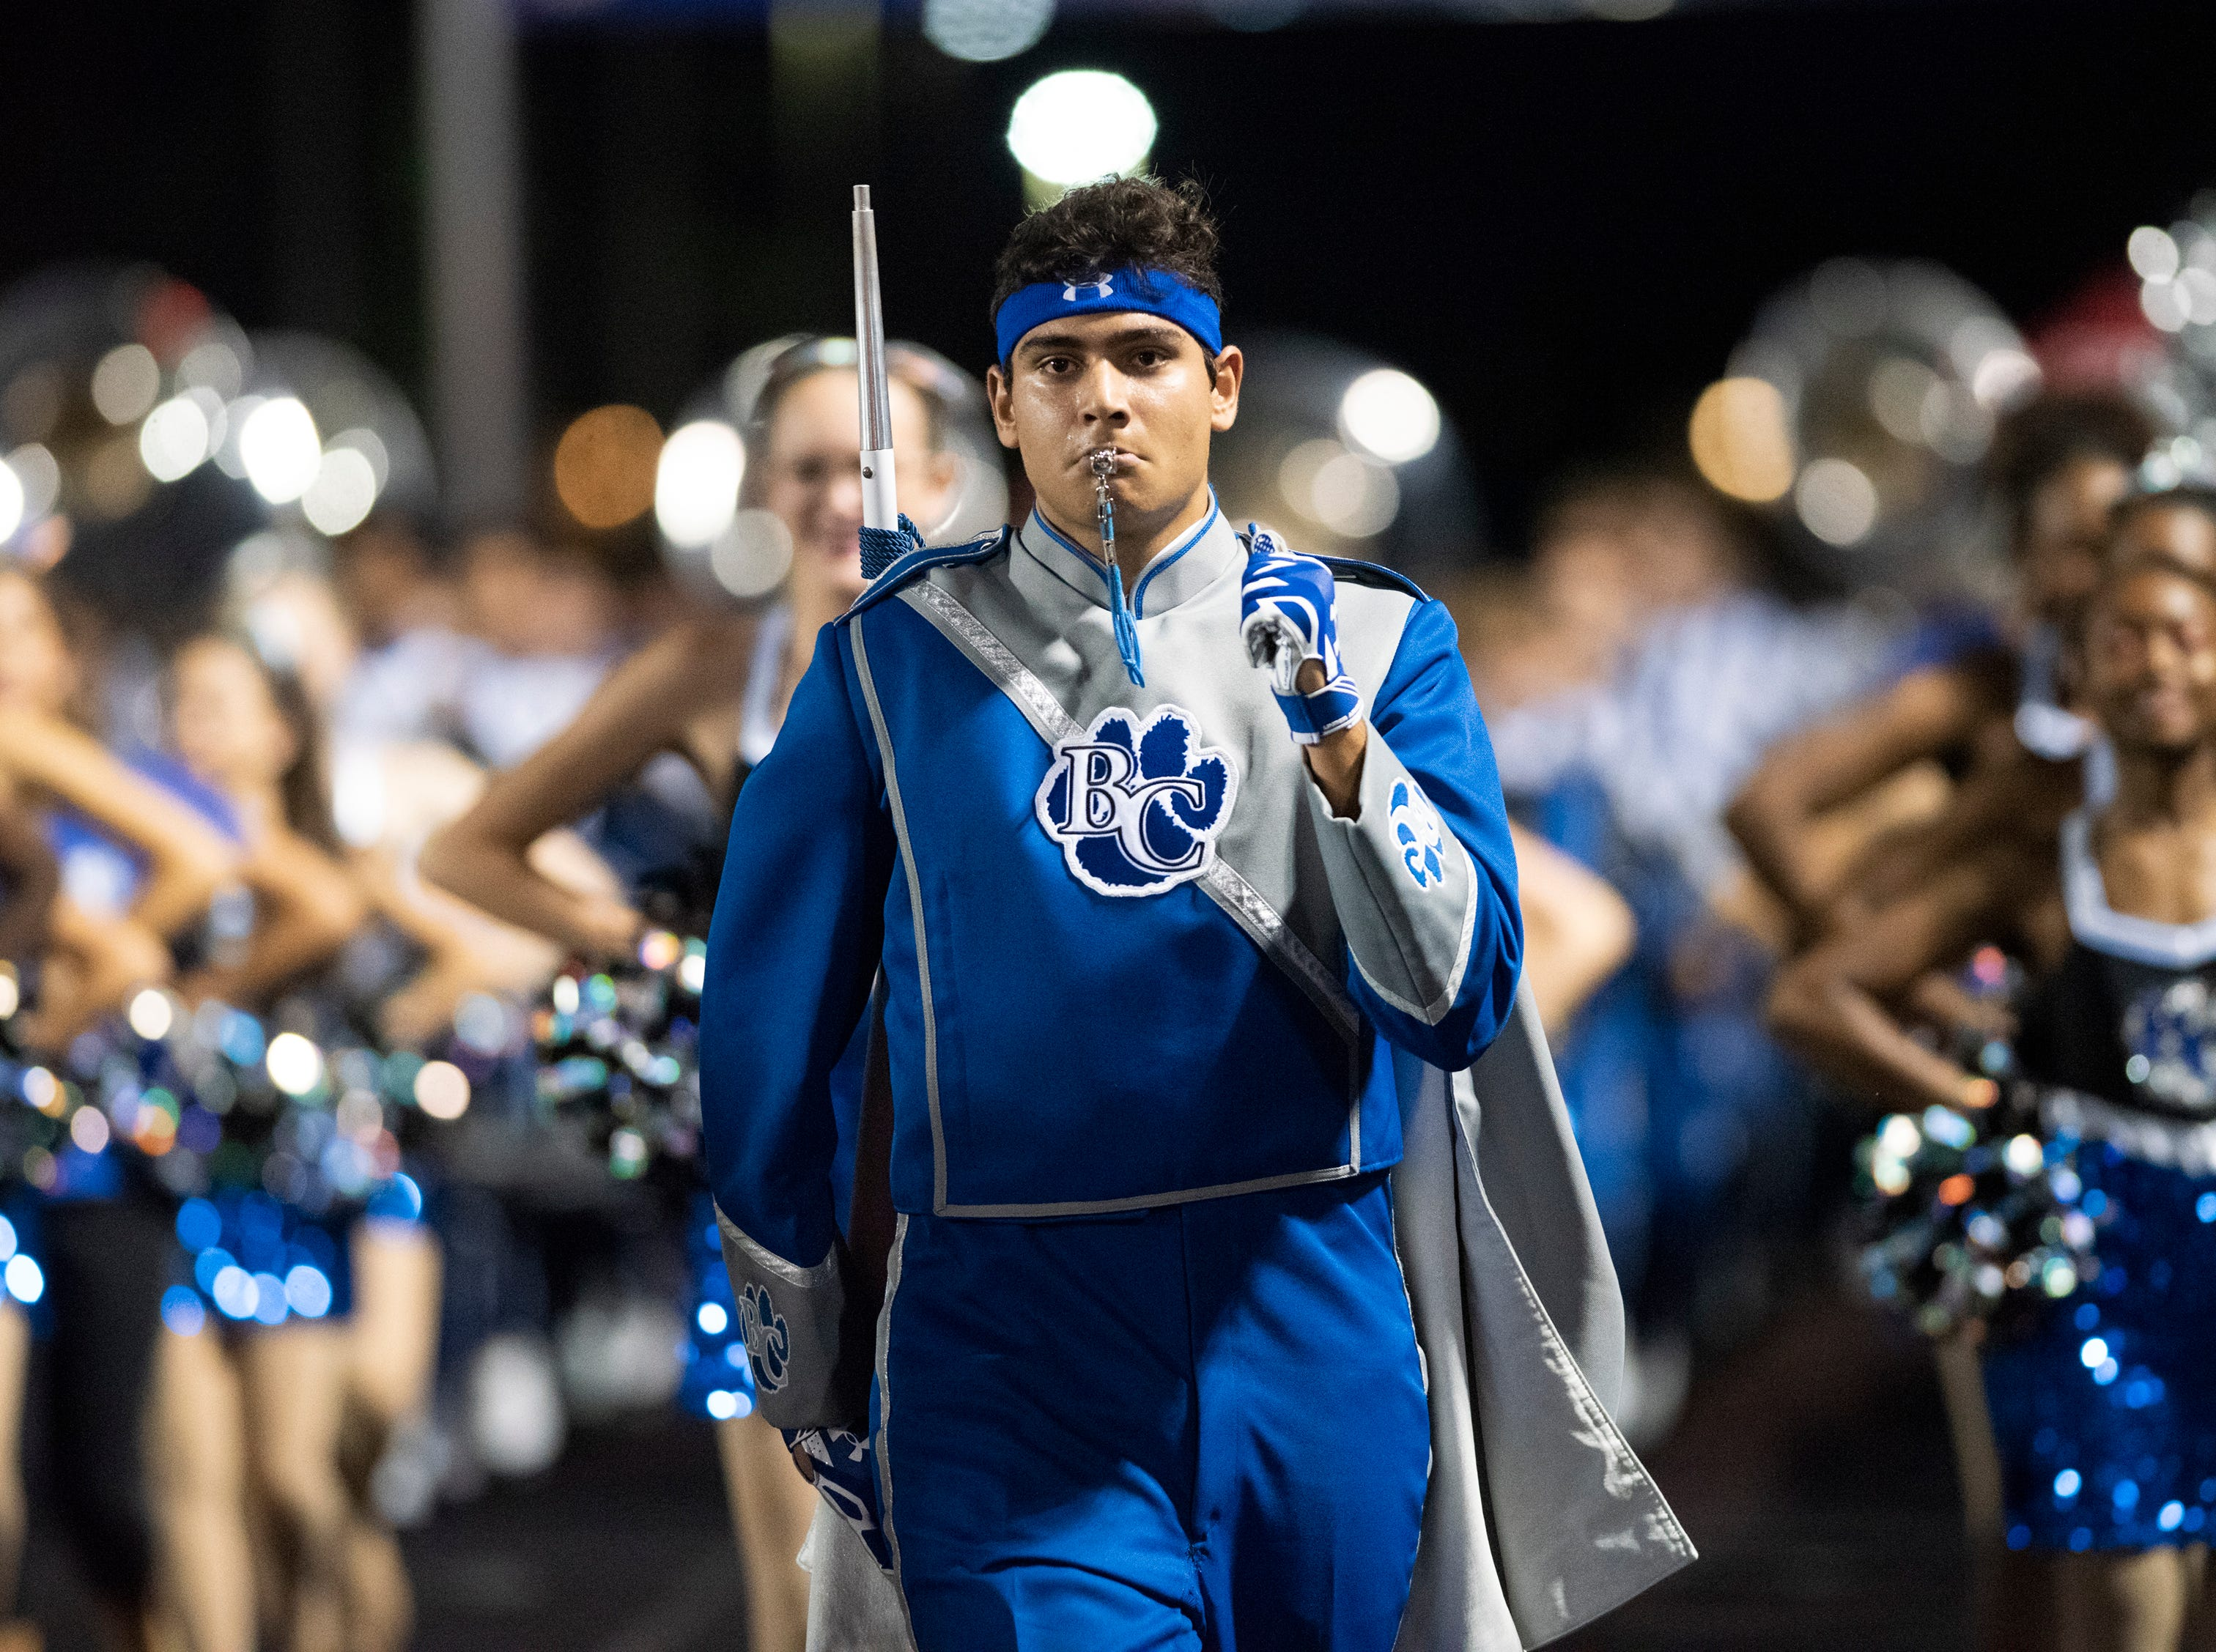 Barron Collier drum major Michael Dina leads the band onto the field before the start of the game against Mariner at Barron Collier High Friday night, September 21, 2018.